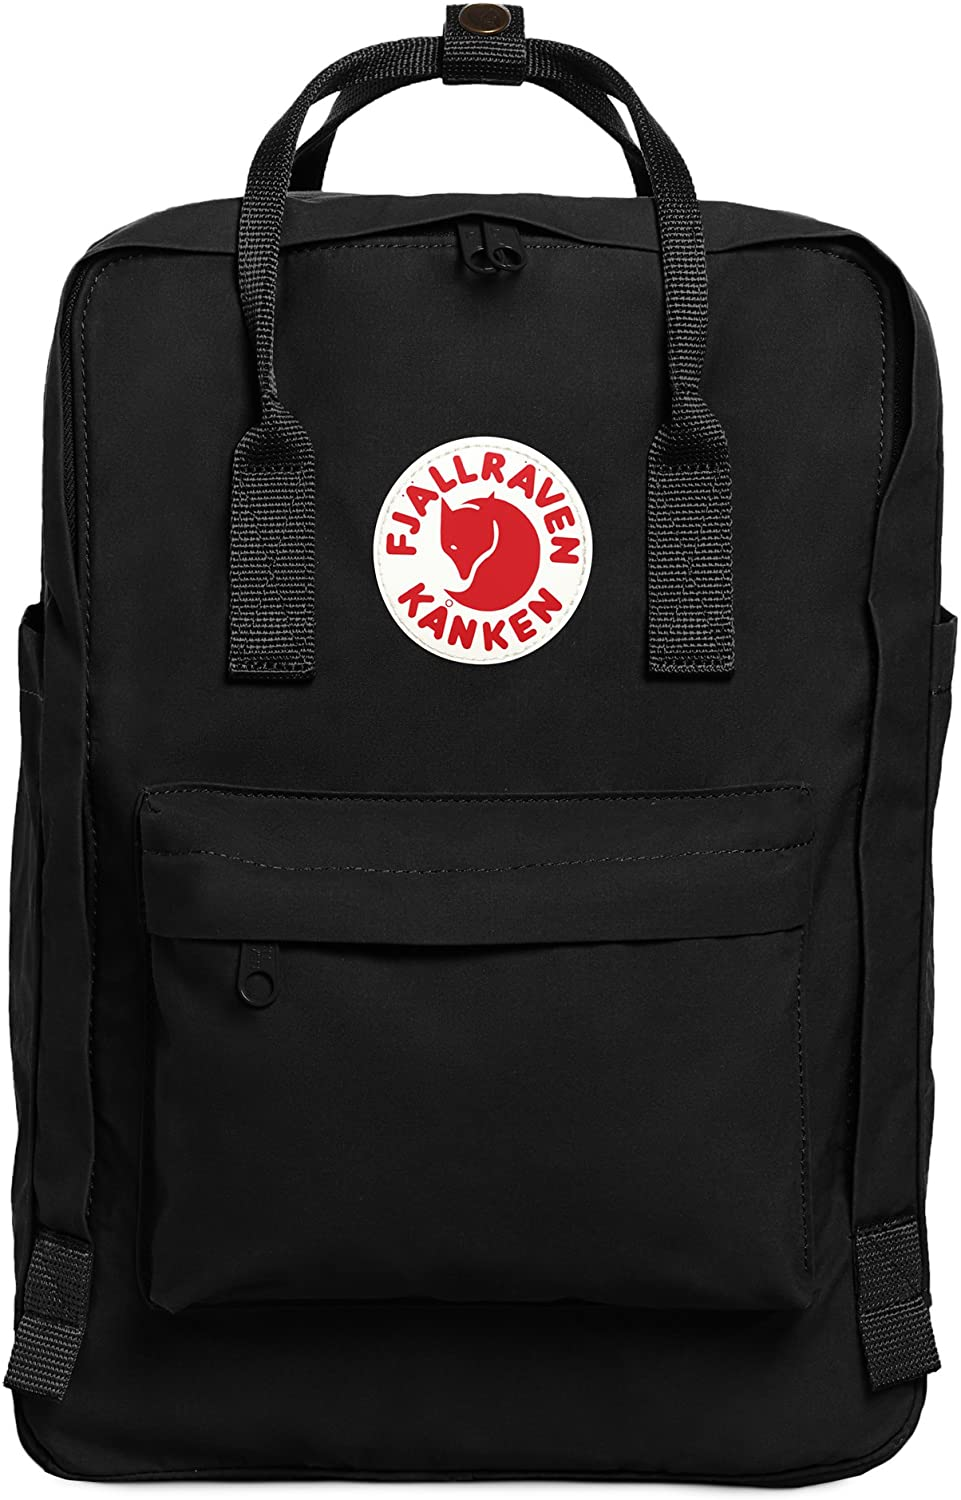 "Fjallraven, Kanken Laptop 15"" Backpack for Everyday"